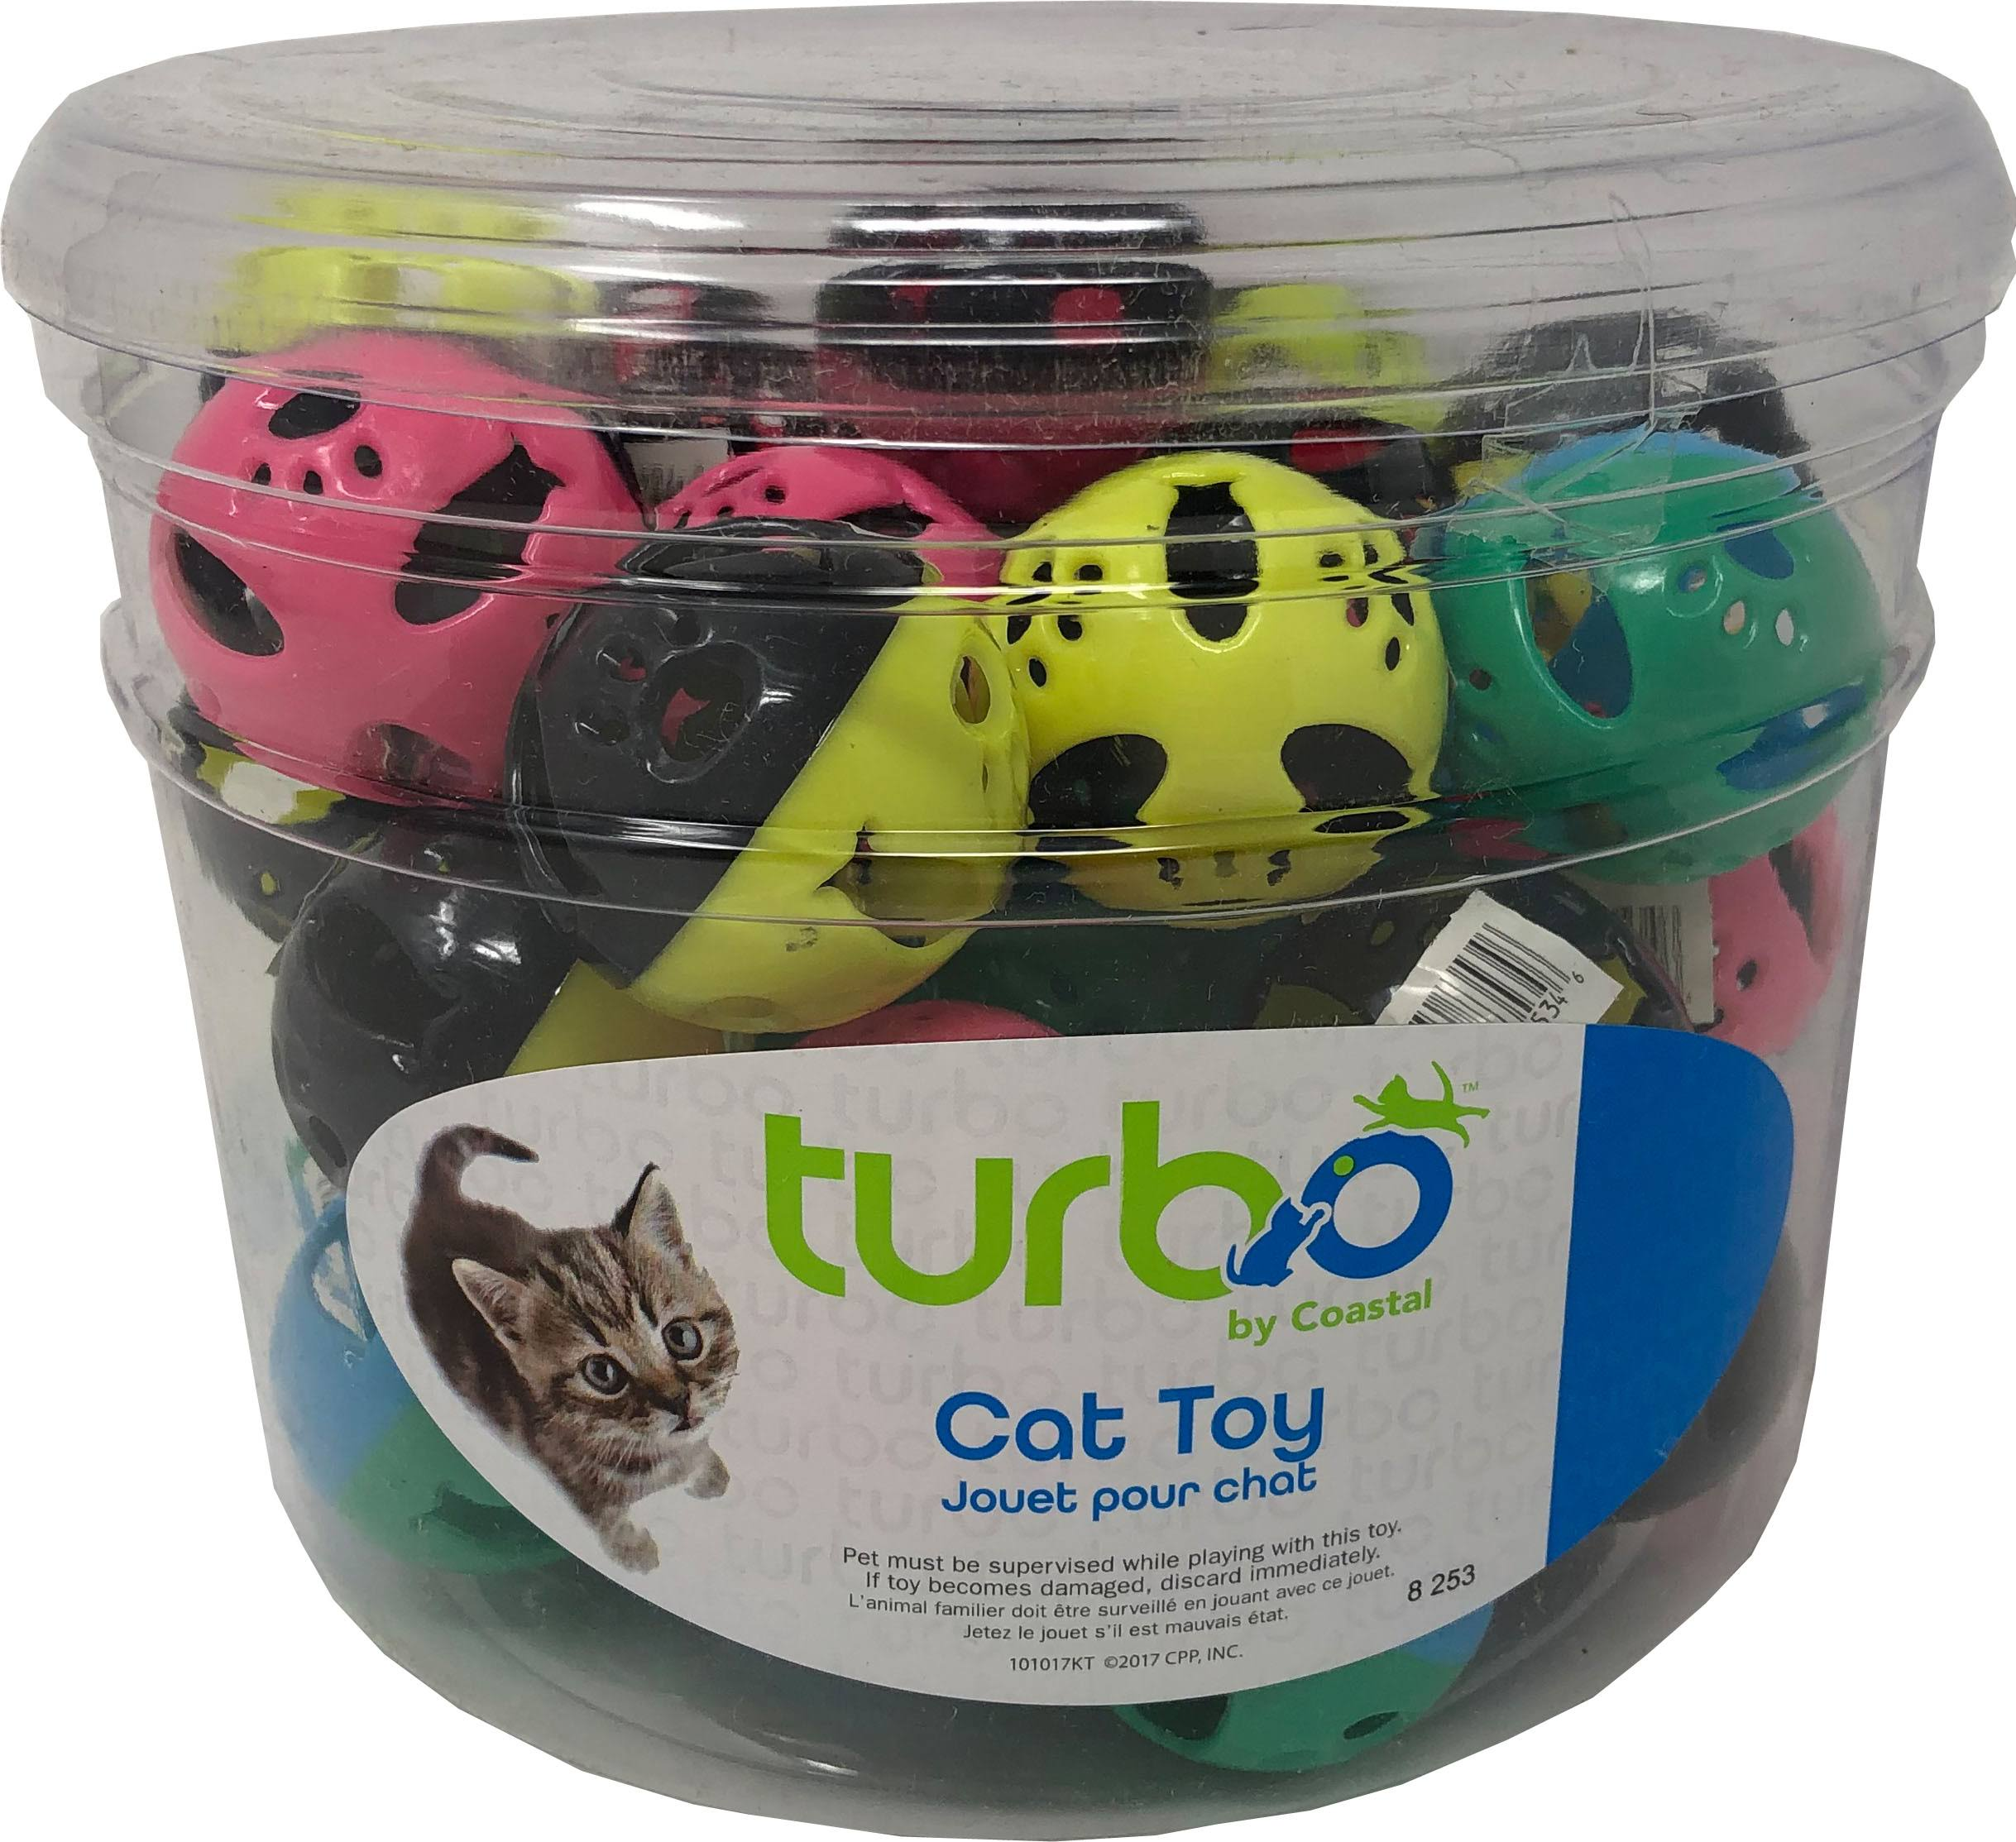 Coastal Pet Products 80534 NCLCAT Turbo Plastic Balls Cat Toy Canister - Multicolor 36 Piece - Pack of 8